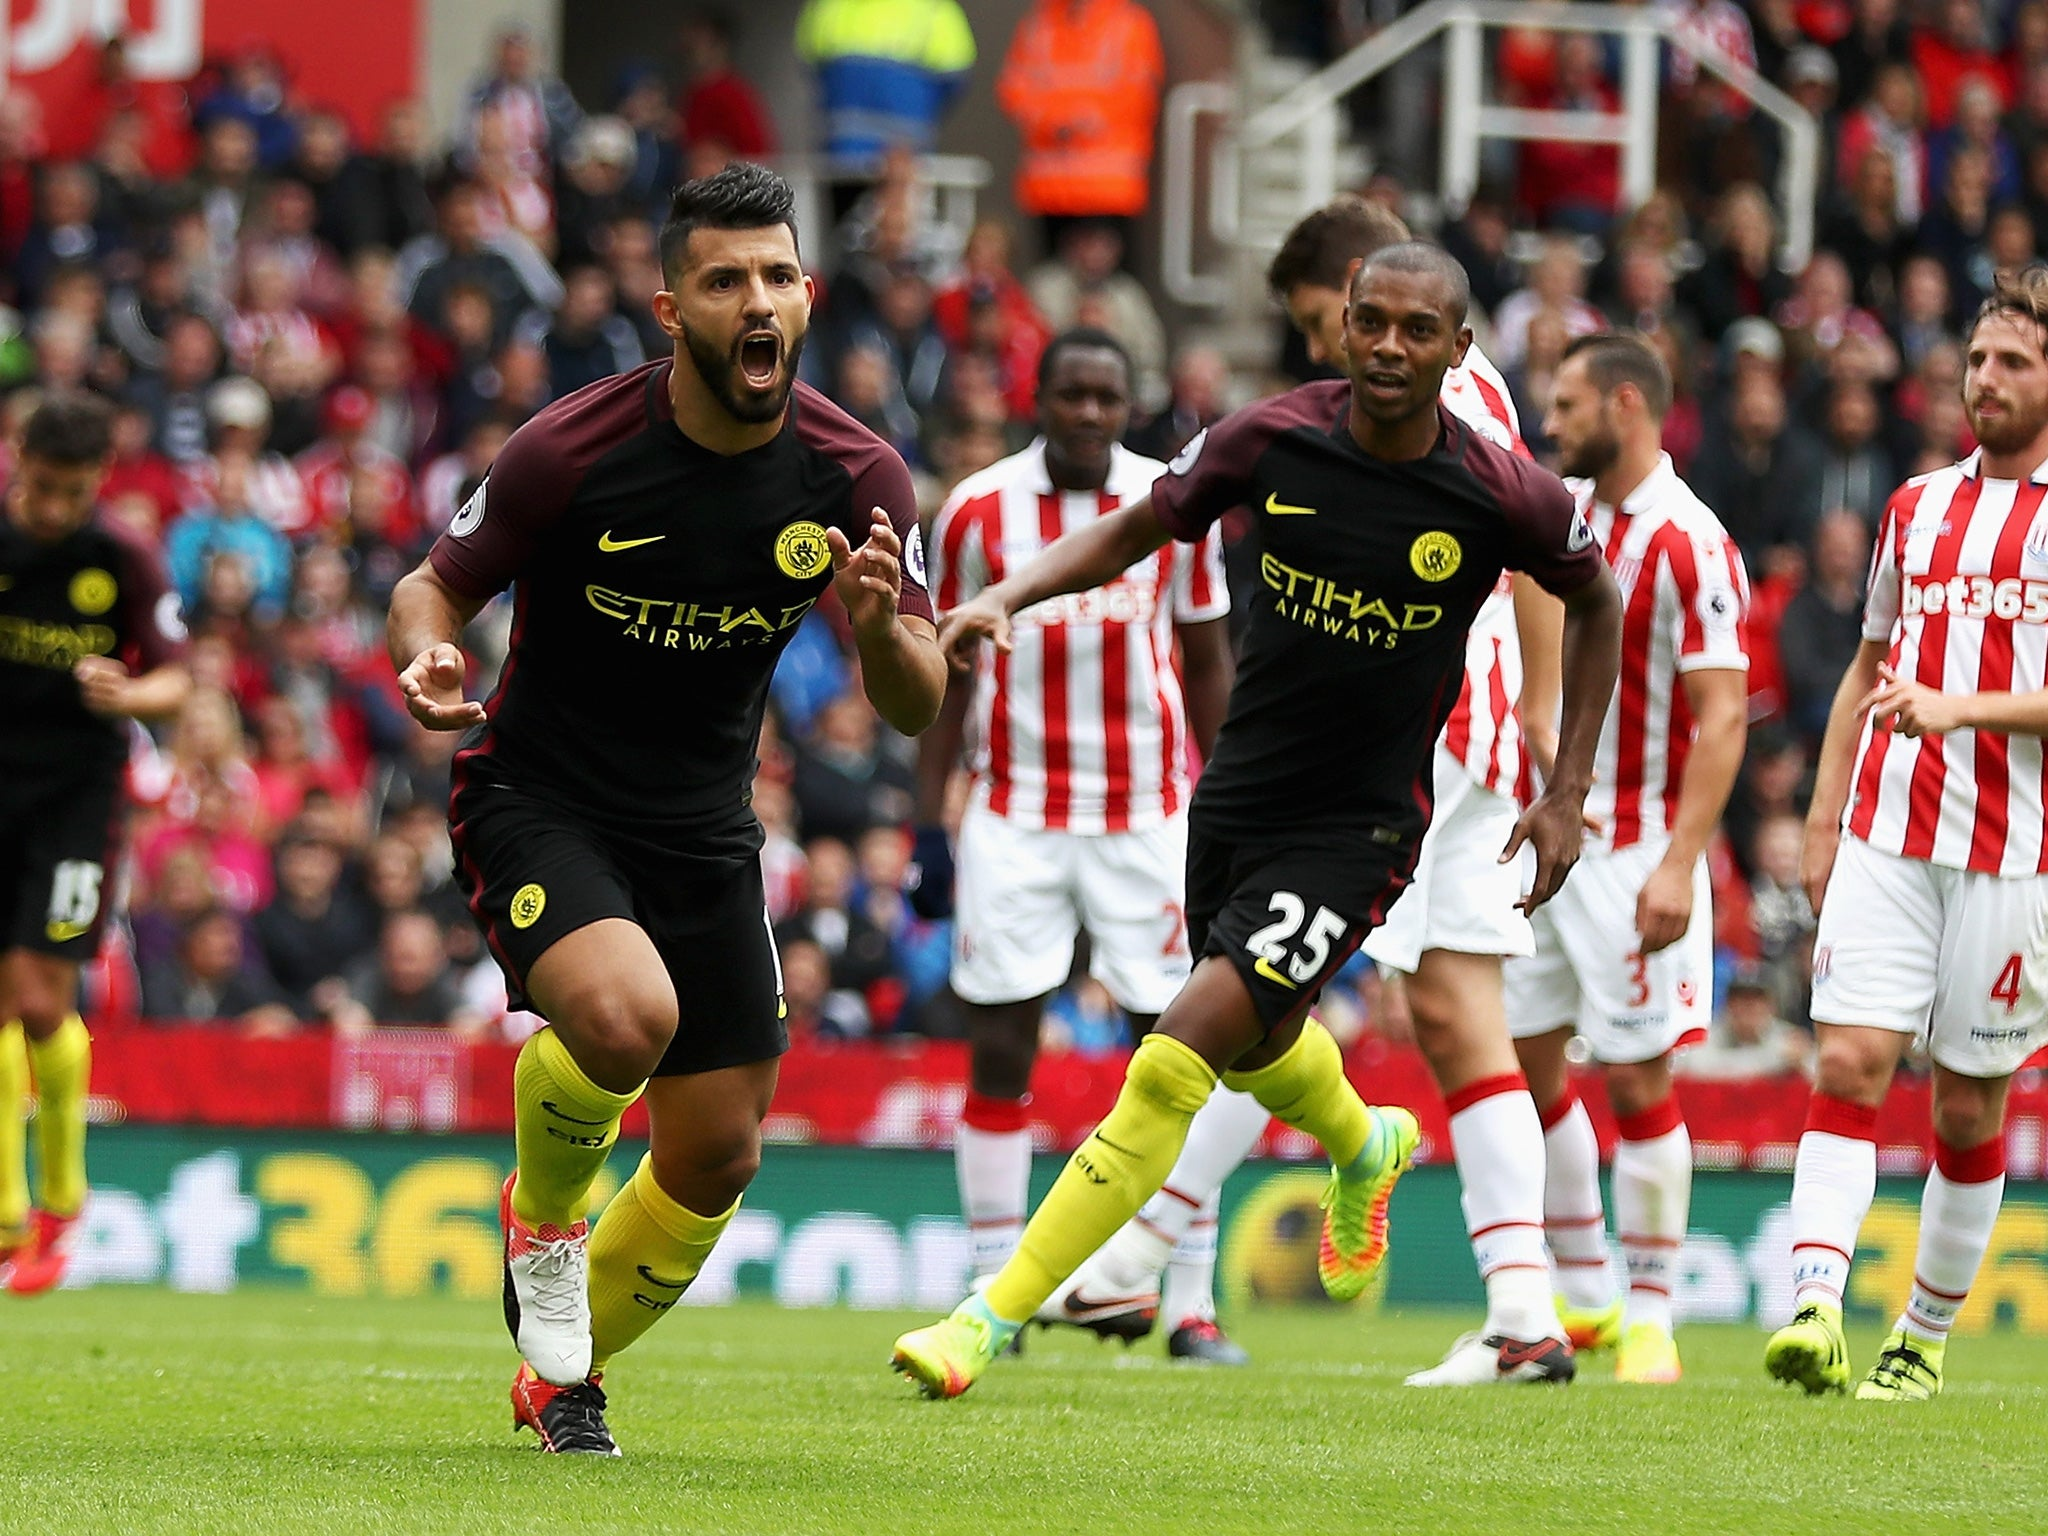 Stoke Vs Manchester City Match Report Sergio Aguero And Nolito Bag Braces In Game Of Controversial Penalty Calls The Independent